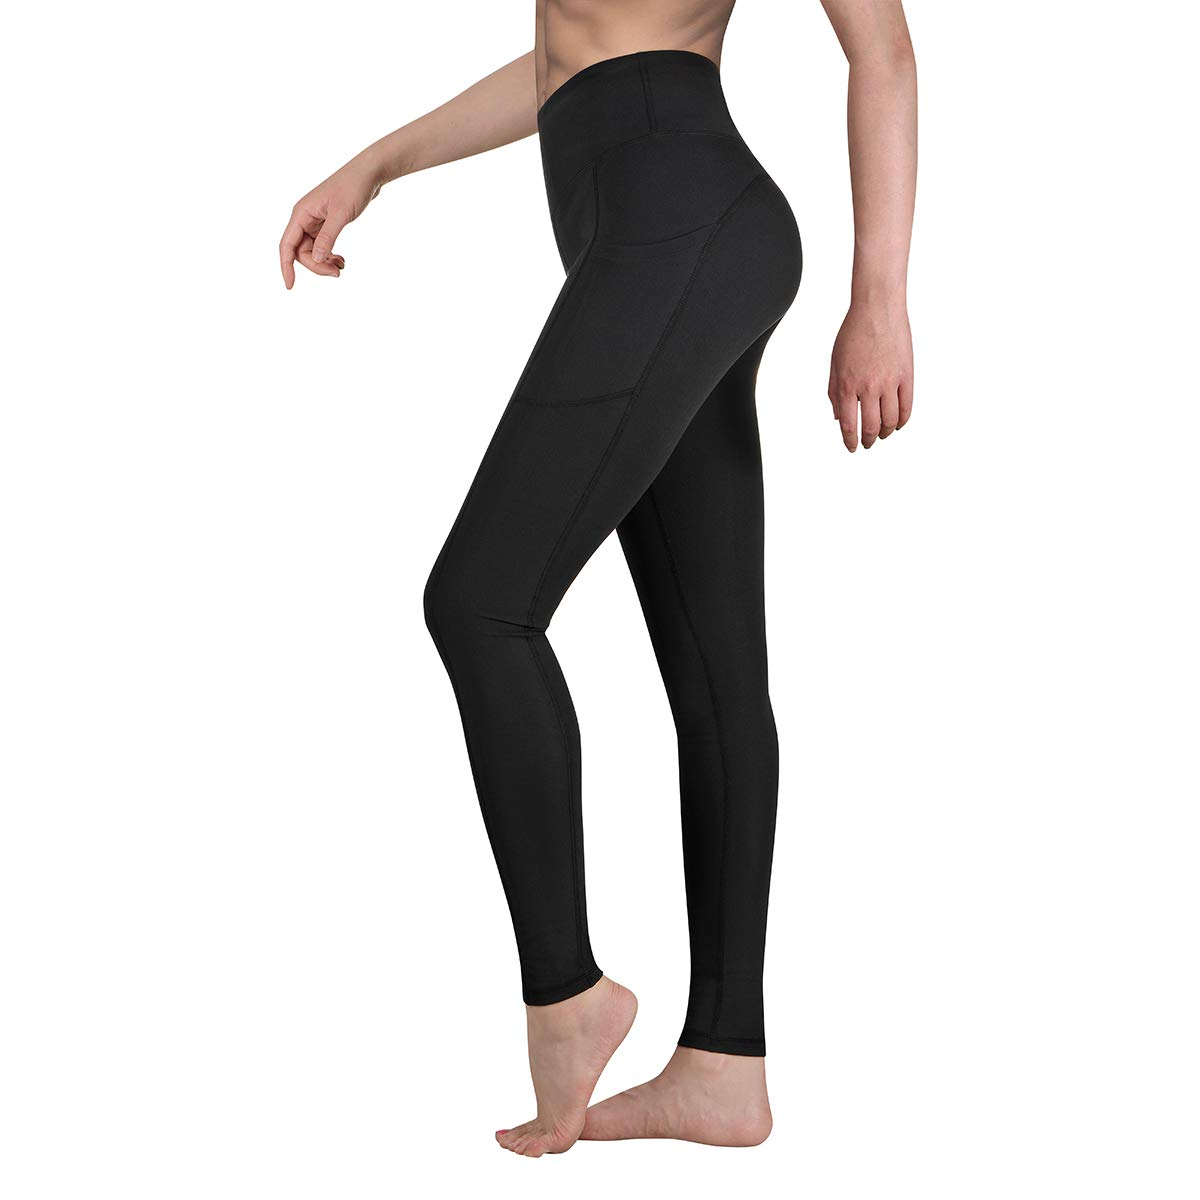 Occffy High Waist Yoga Pants for Women with Pockets Tummy Control Leggings Workout Running Tights DS166 (Black, X-Large)